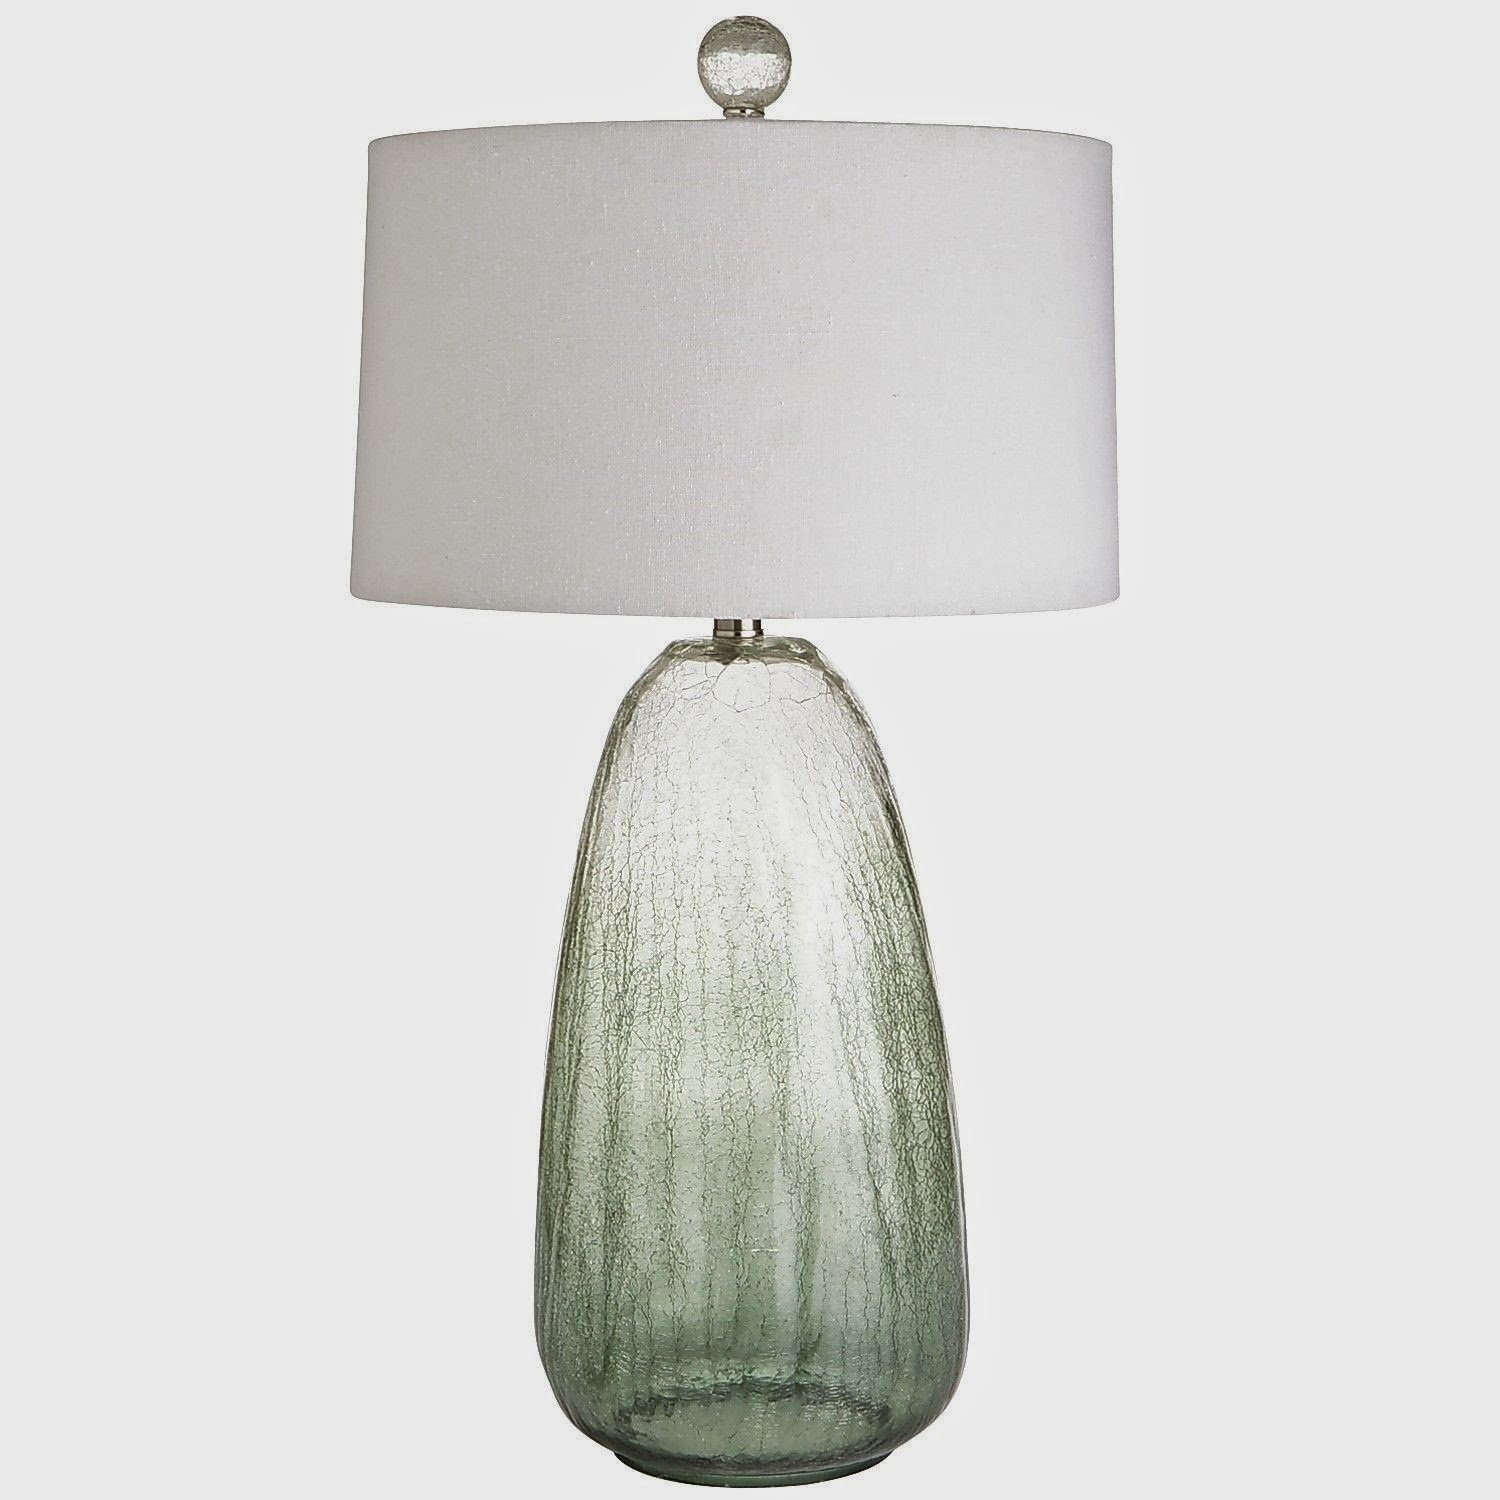 Merveilleux Birch Lanes Linden Glass Table Lamp Is A Stunning Gourd